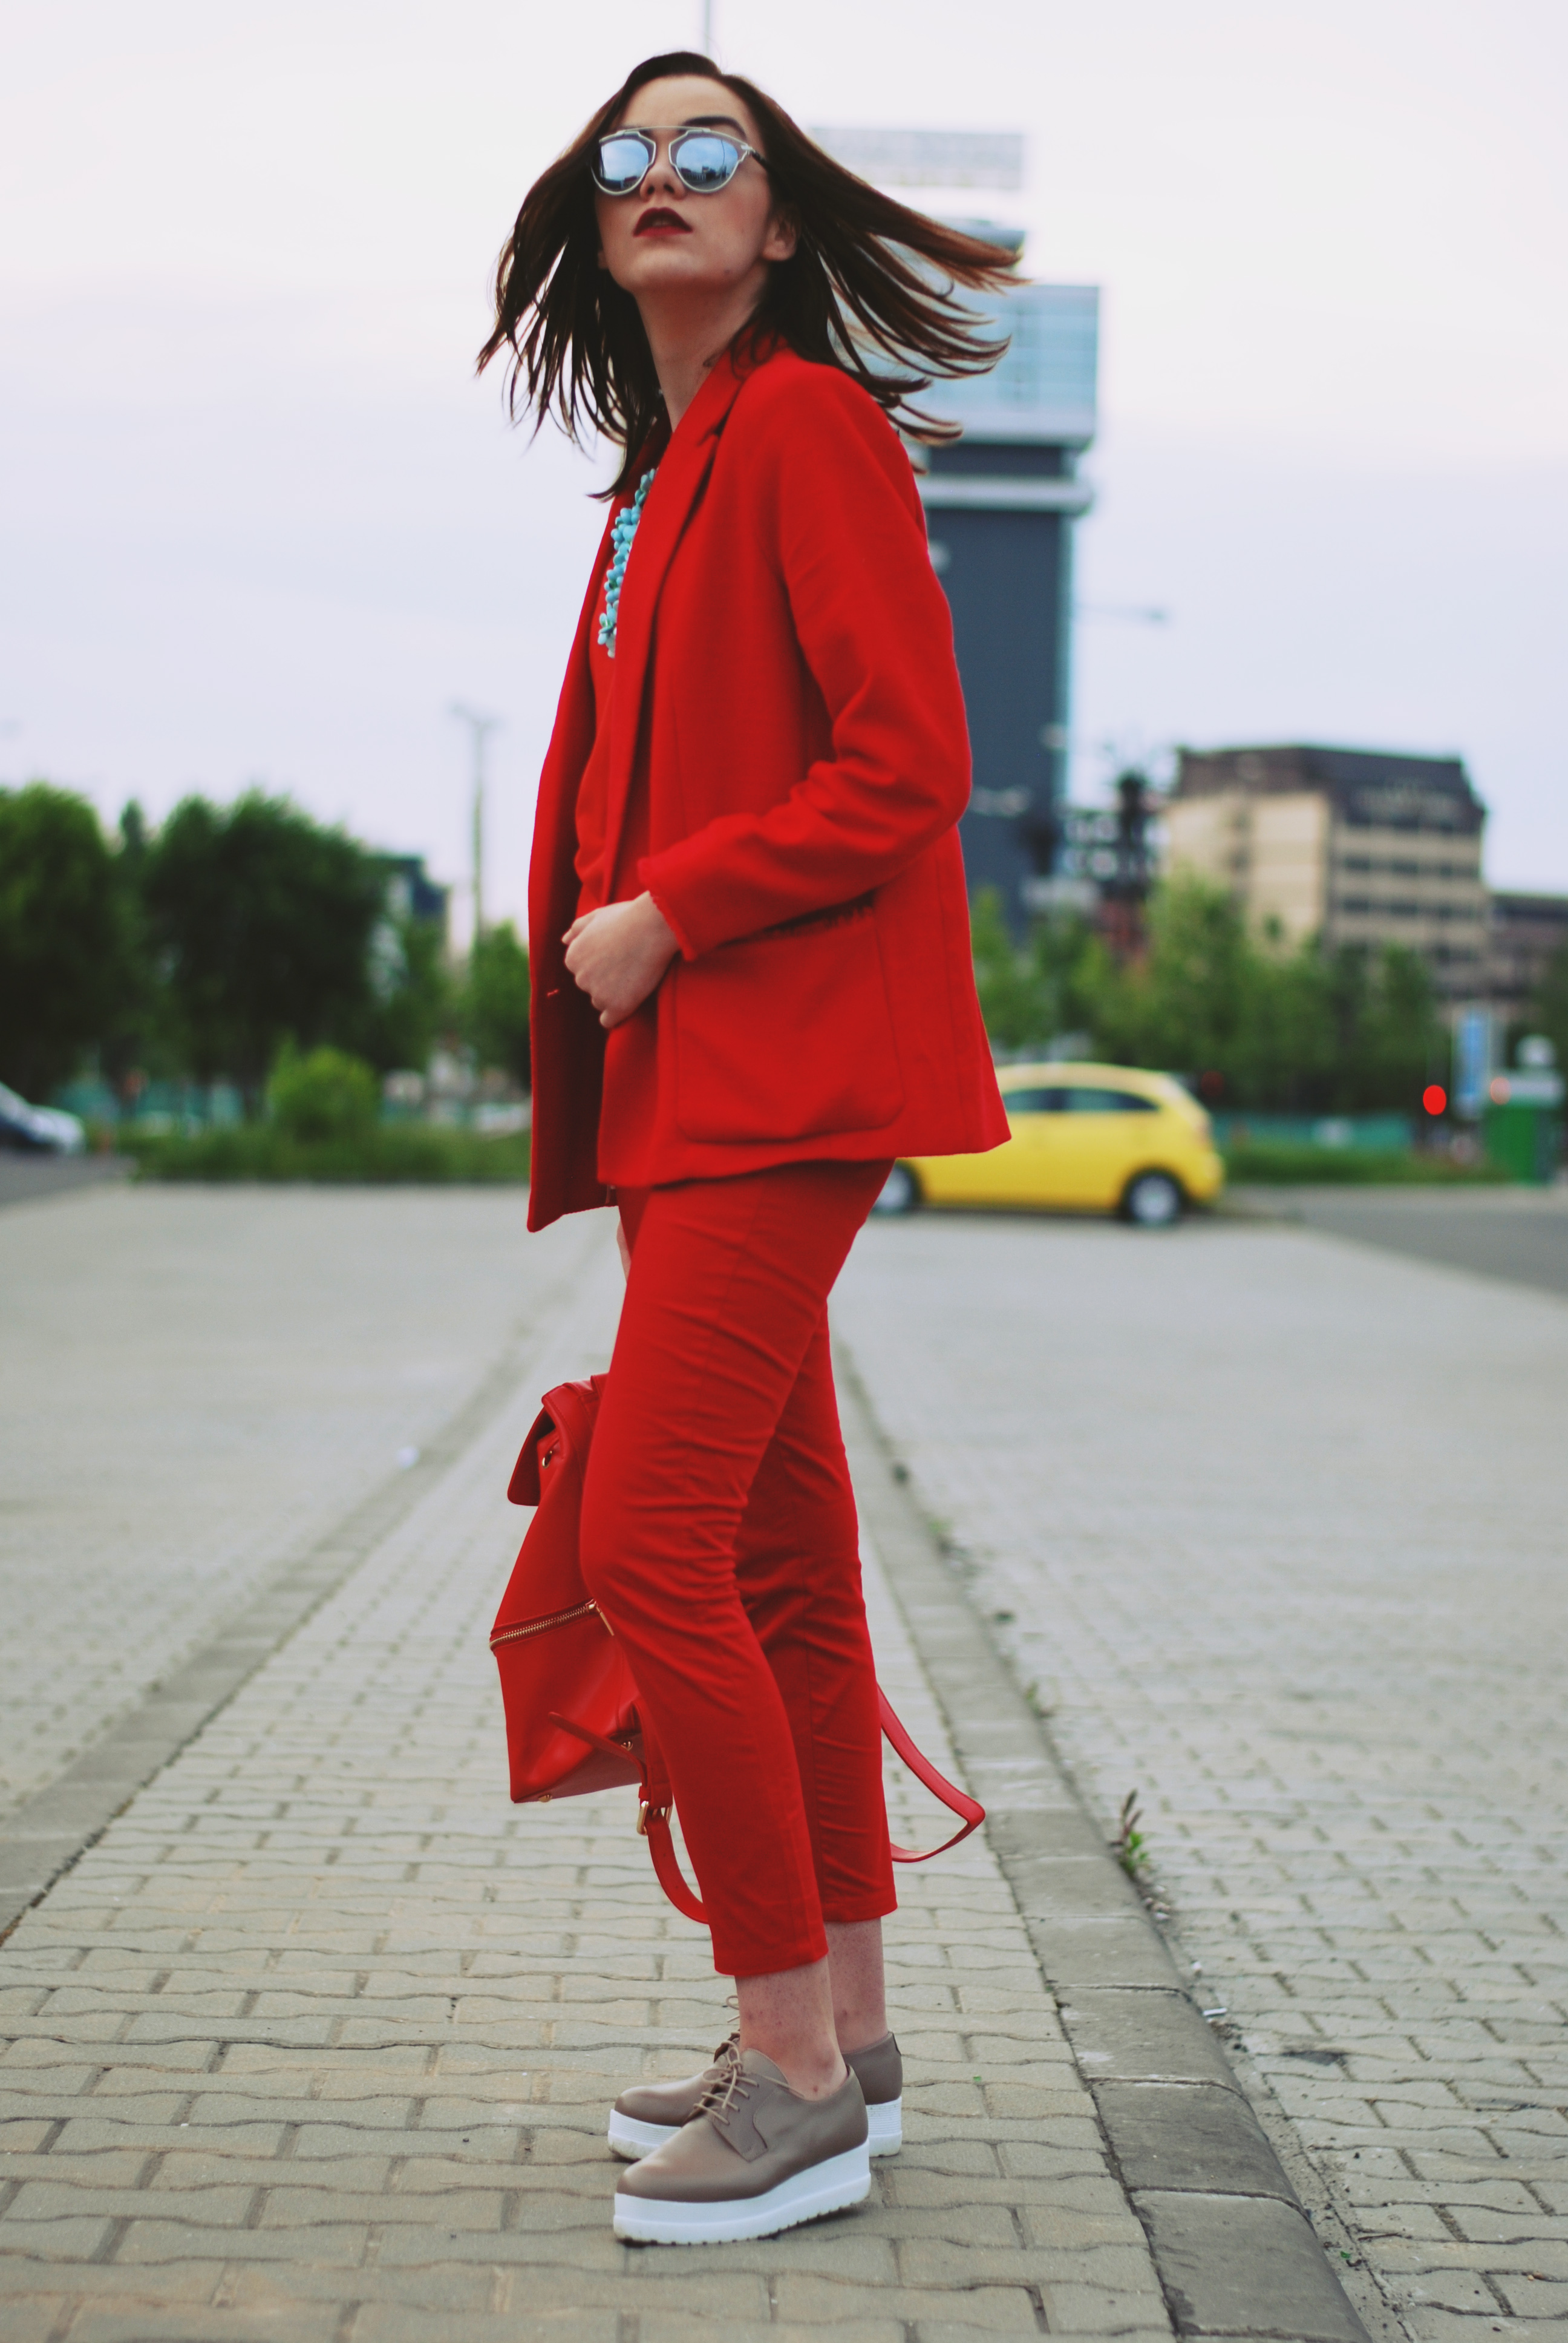 The Urban Red Outfit Couturezilla